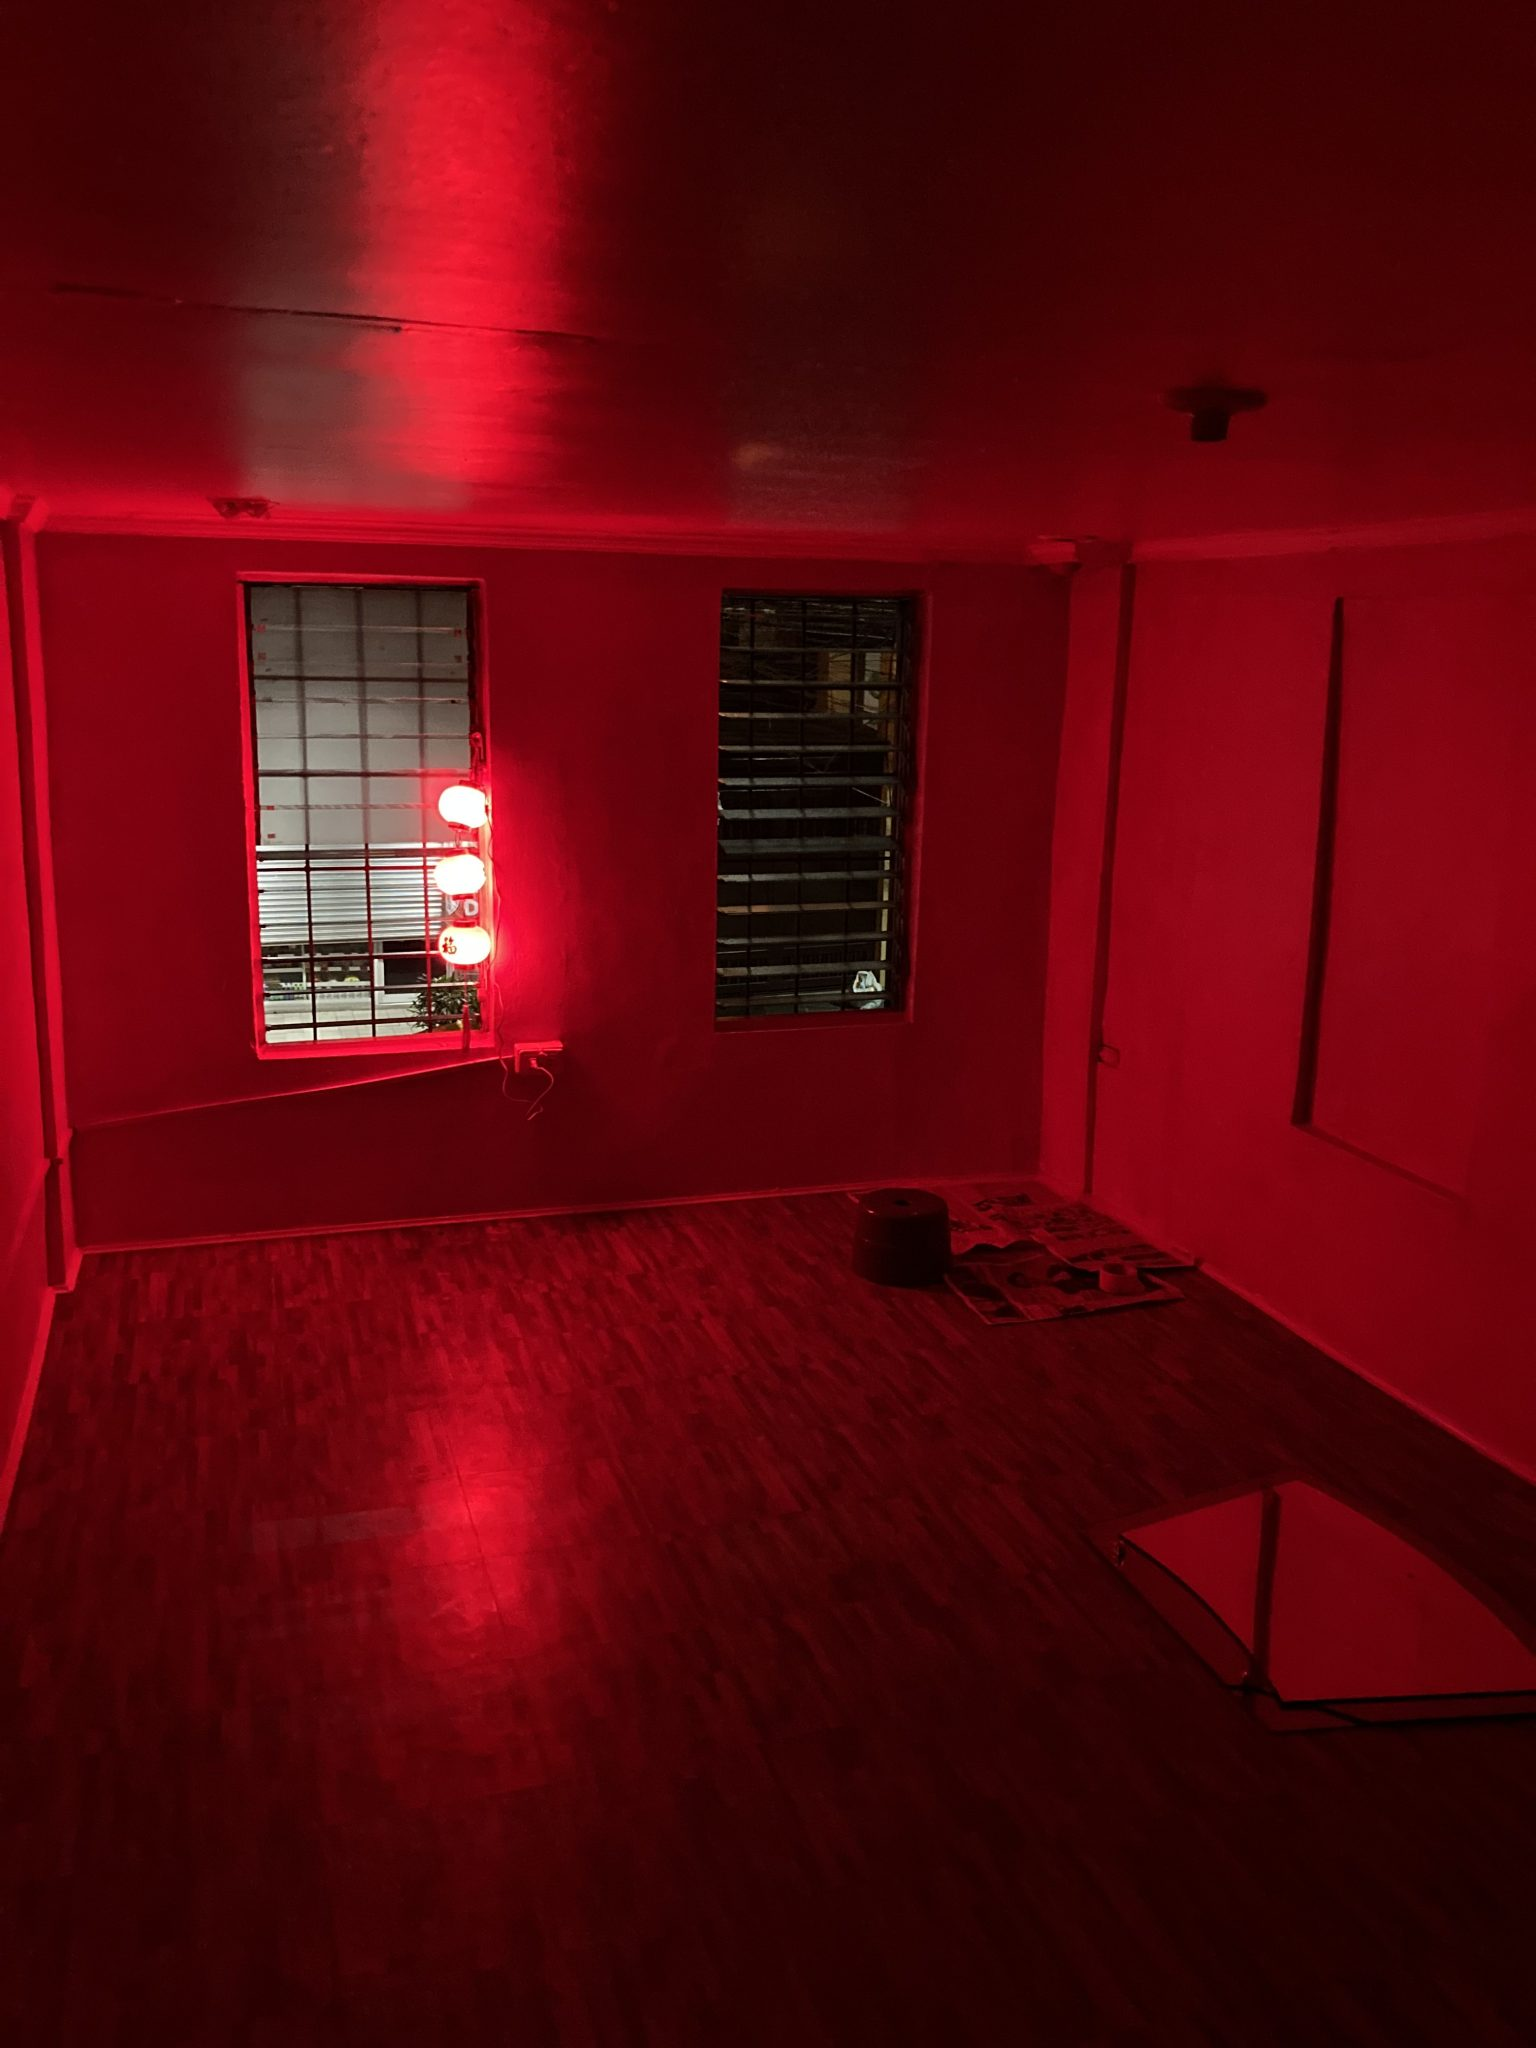 The second floor under renovation. Miel Ochoa intends to transform this as a creative space